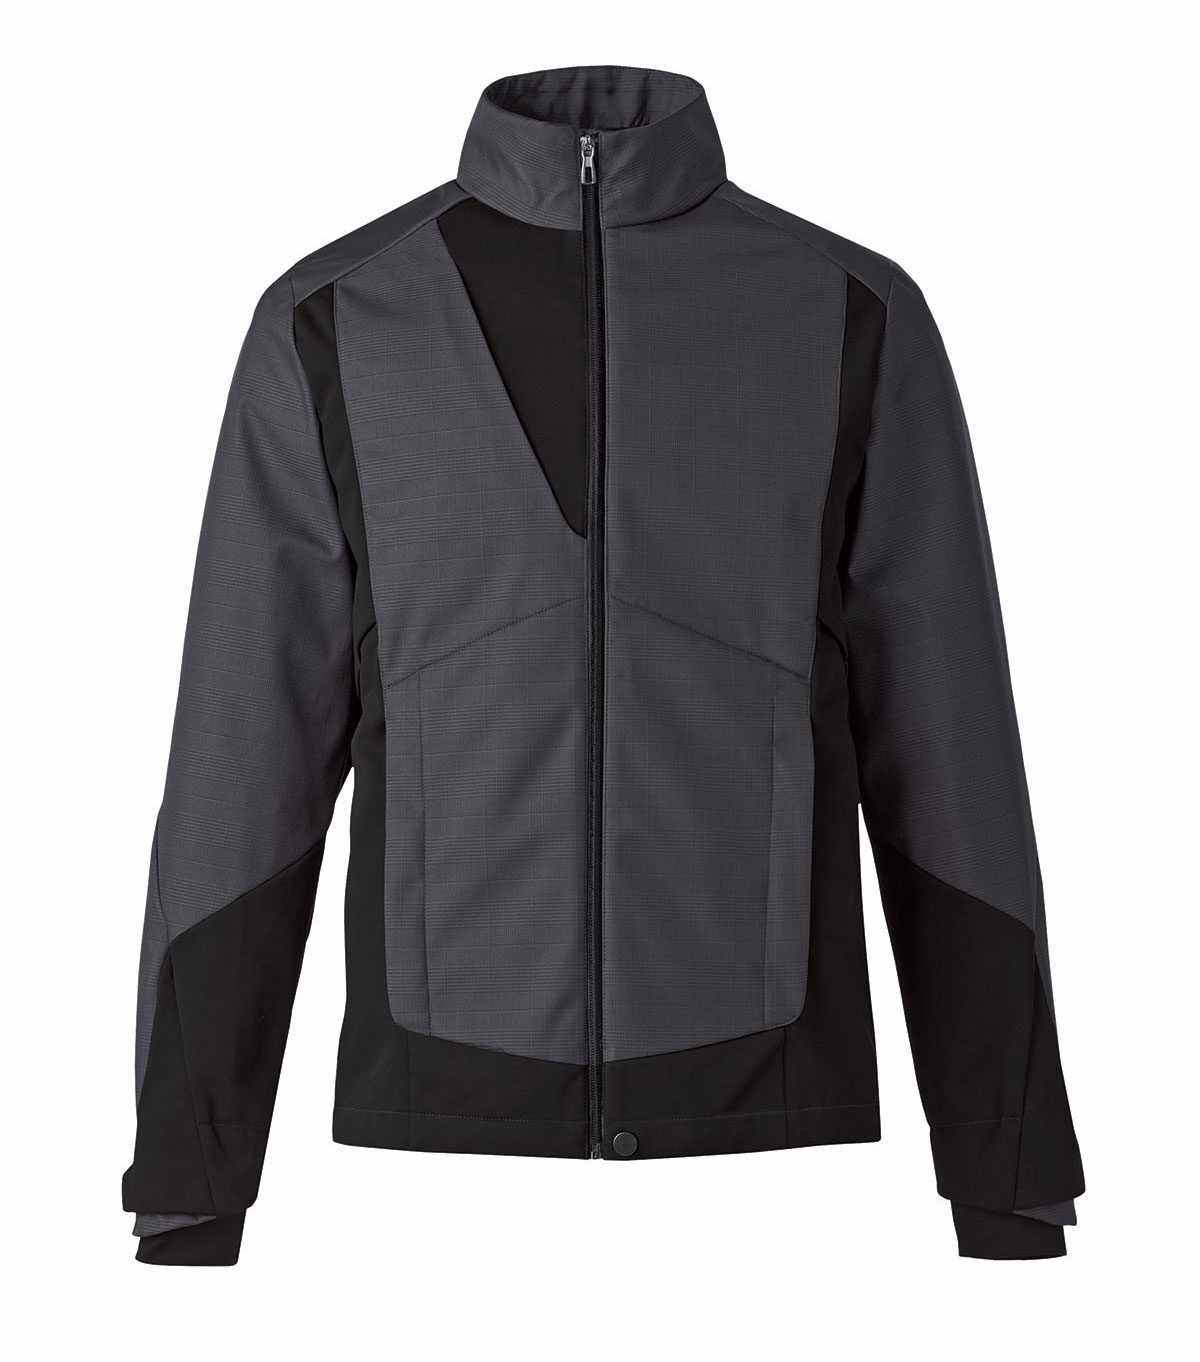 Mens Heat Reflect Jacket